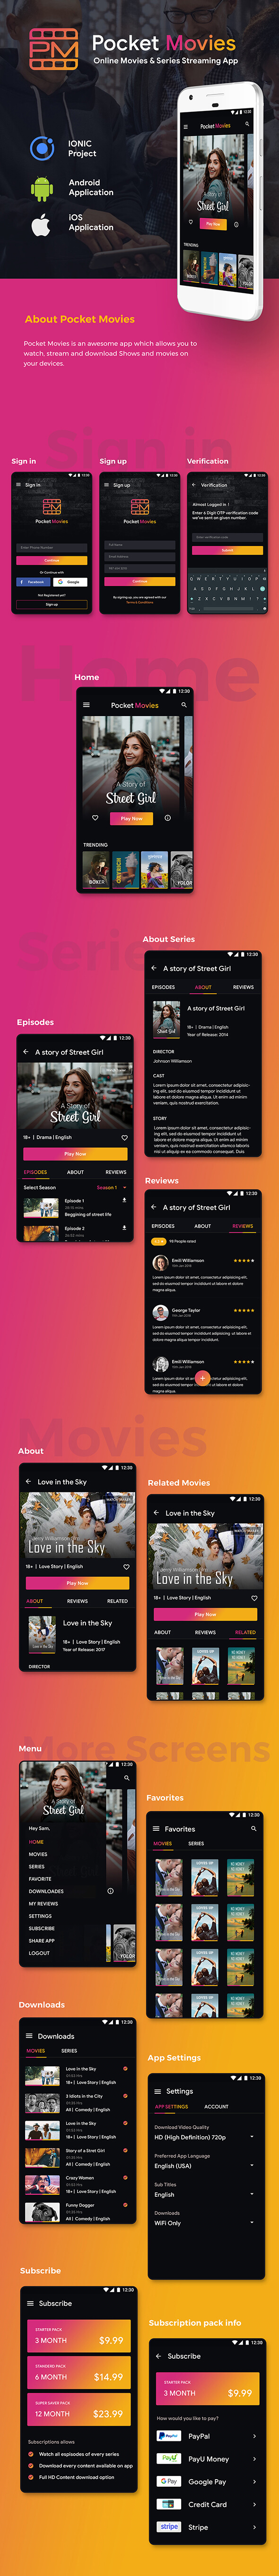 Online Movie & Video Streaming Android + iOS App Template | HTML + Css IONIC 3 - 2